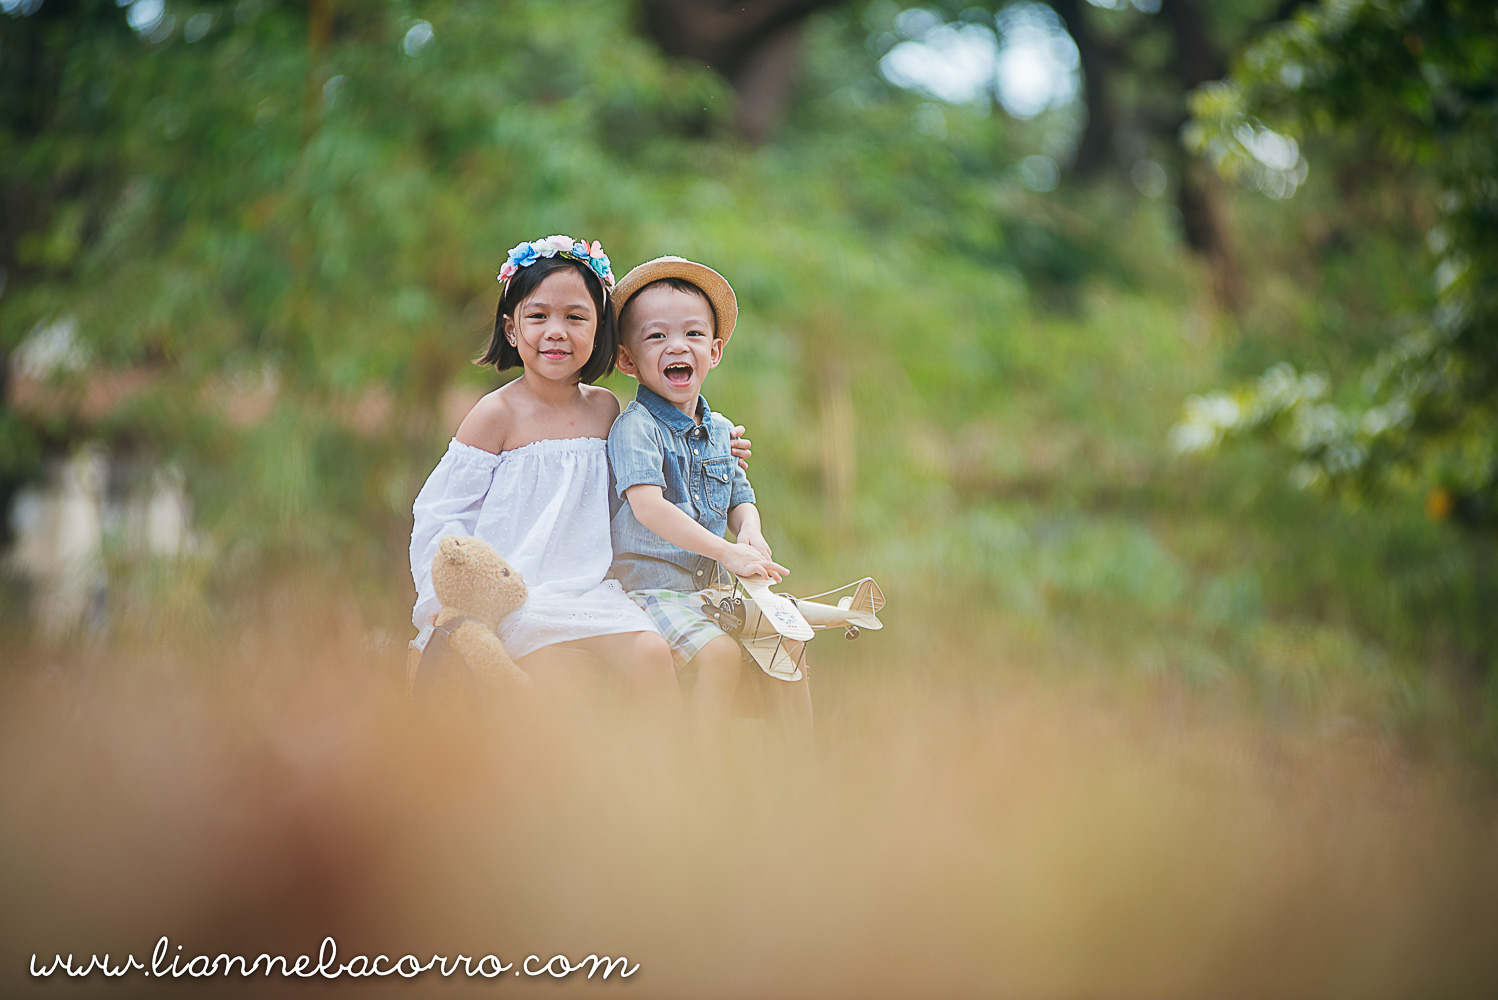 May 2016 - Geli - Family Portrait Photography - Lianne Bacorro - Something Pretty Manila-10